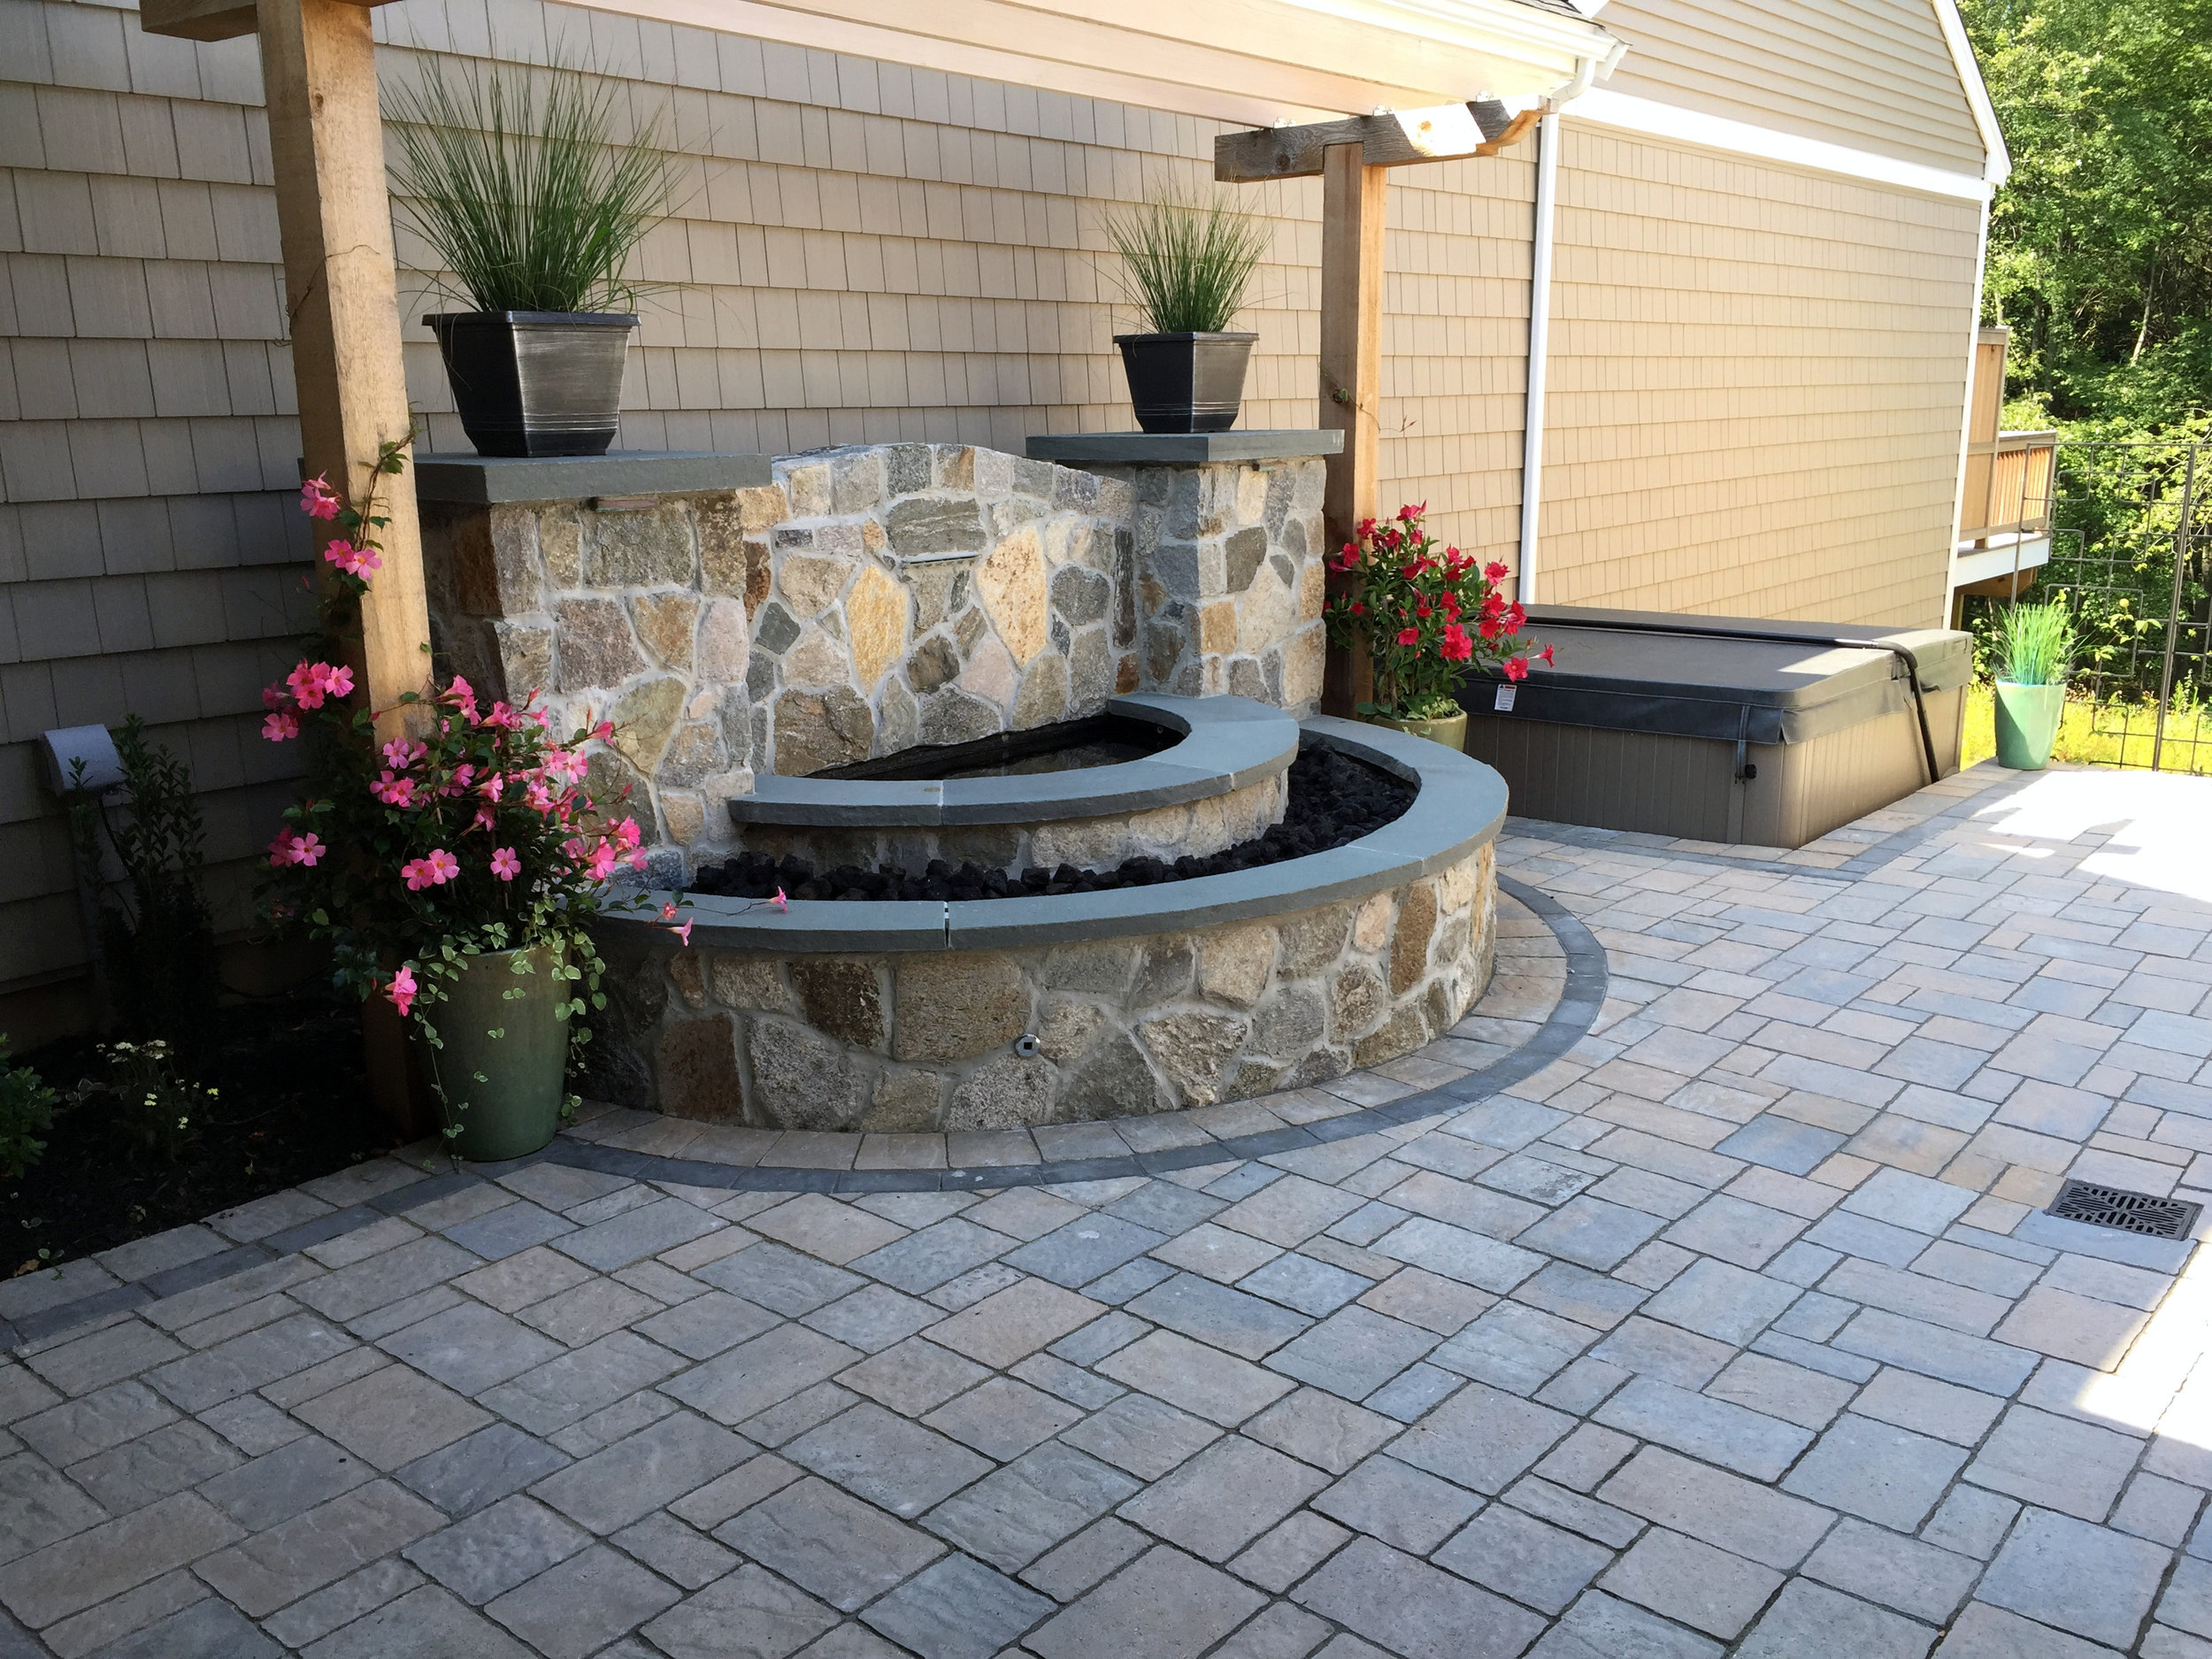 Finding the Best Landscapers Near Me in Newtown, MA